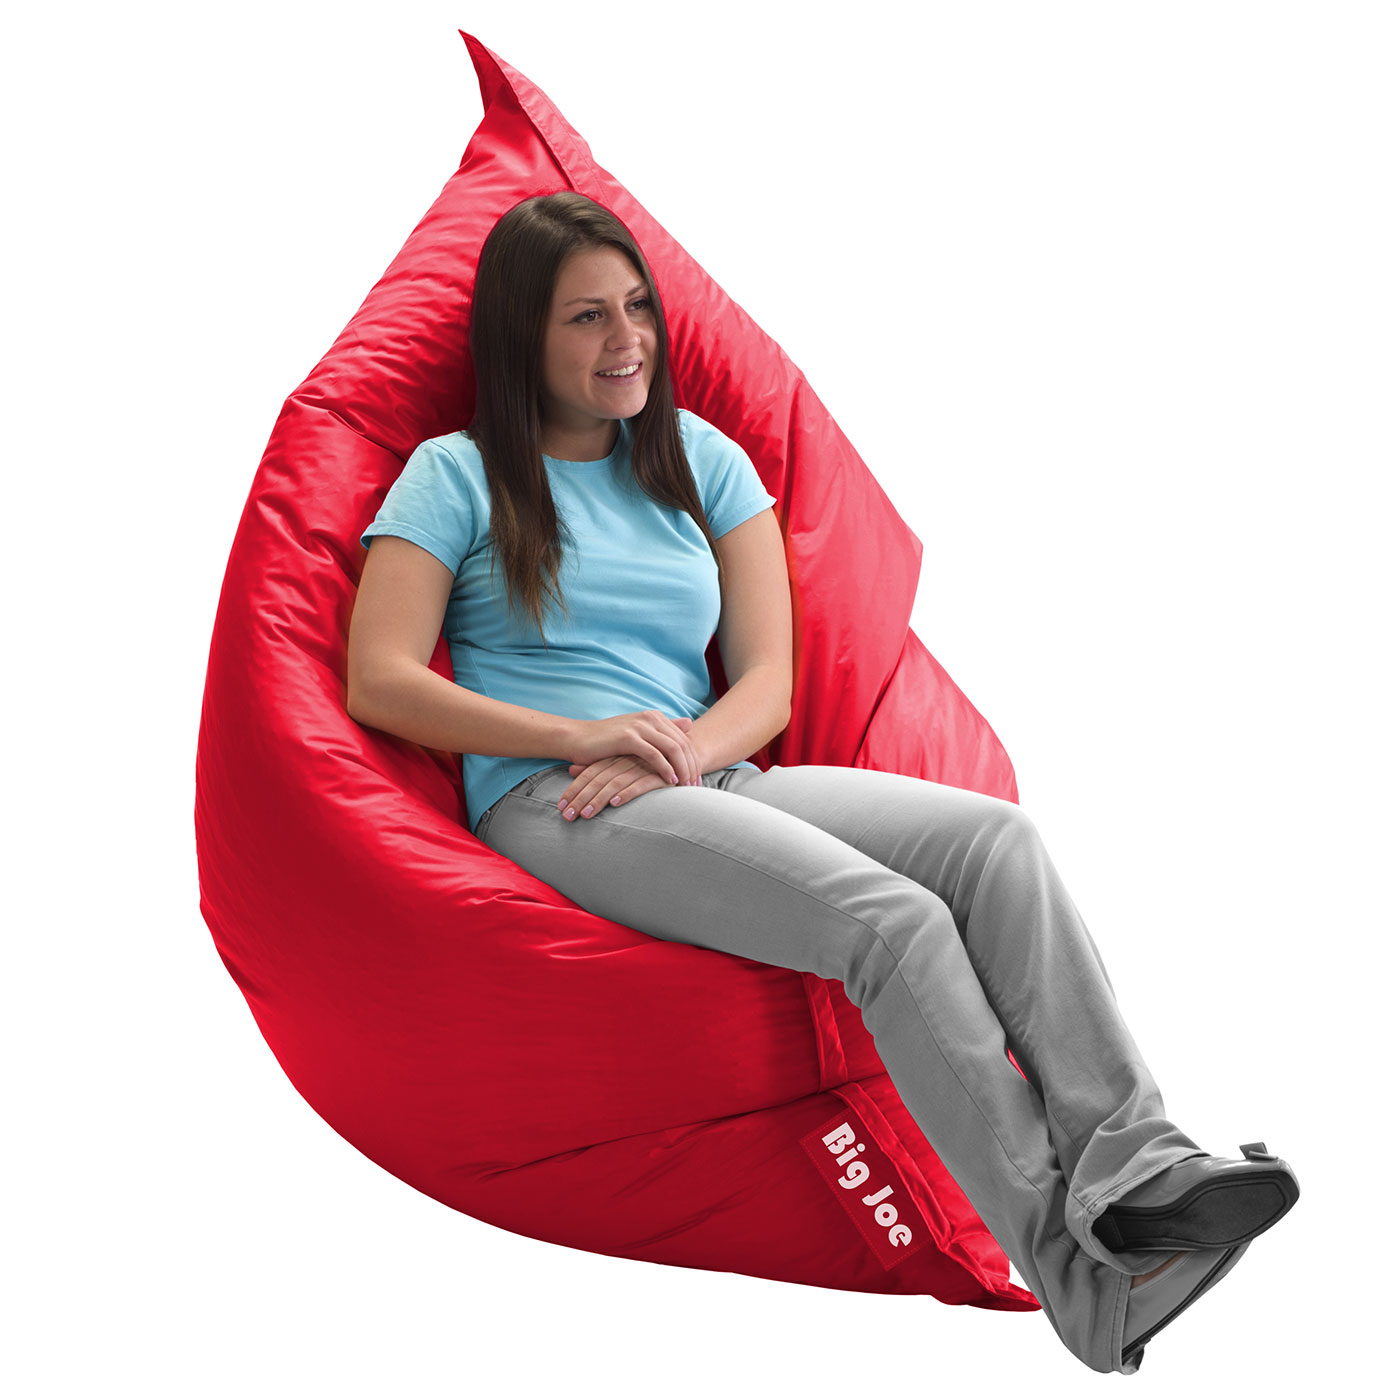 Comfort Research Big Joe Original SmartMax Bean Bag Chair in Flaming Red FREE SHIPPING  sc 1 st  Simply Baby Furniture : big joe bean bag chair pink - Cheerinfomania.Com